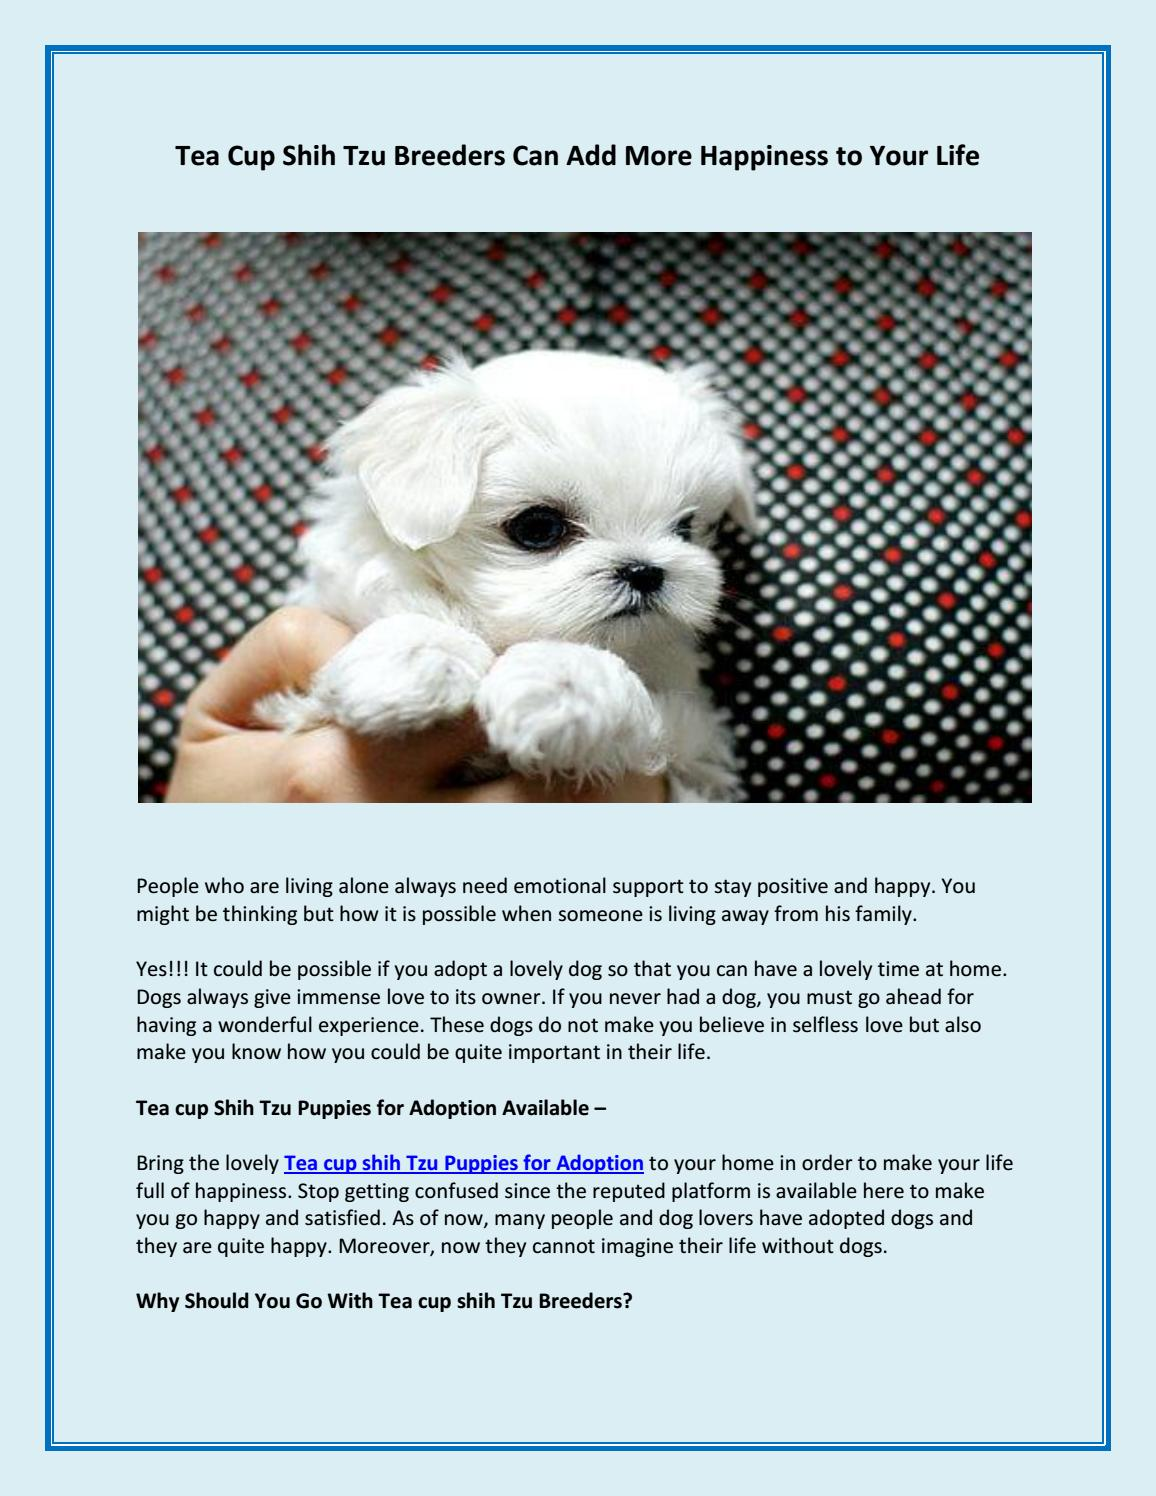 Tea Cup Shih Tzu Breeders Can Add More Happiness To Your Life By Ultimate Shih Tzu Home Issuu